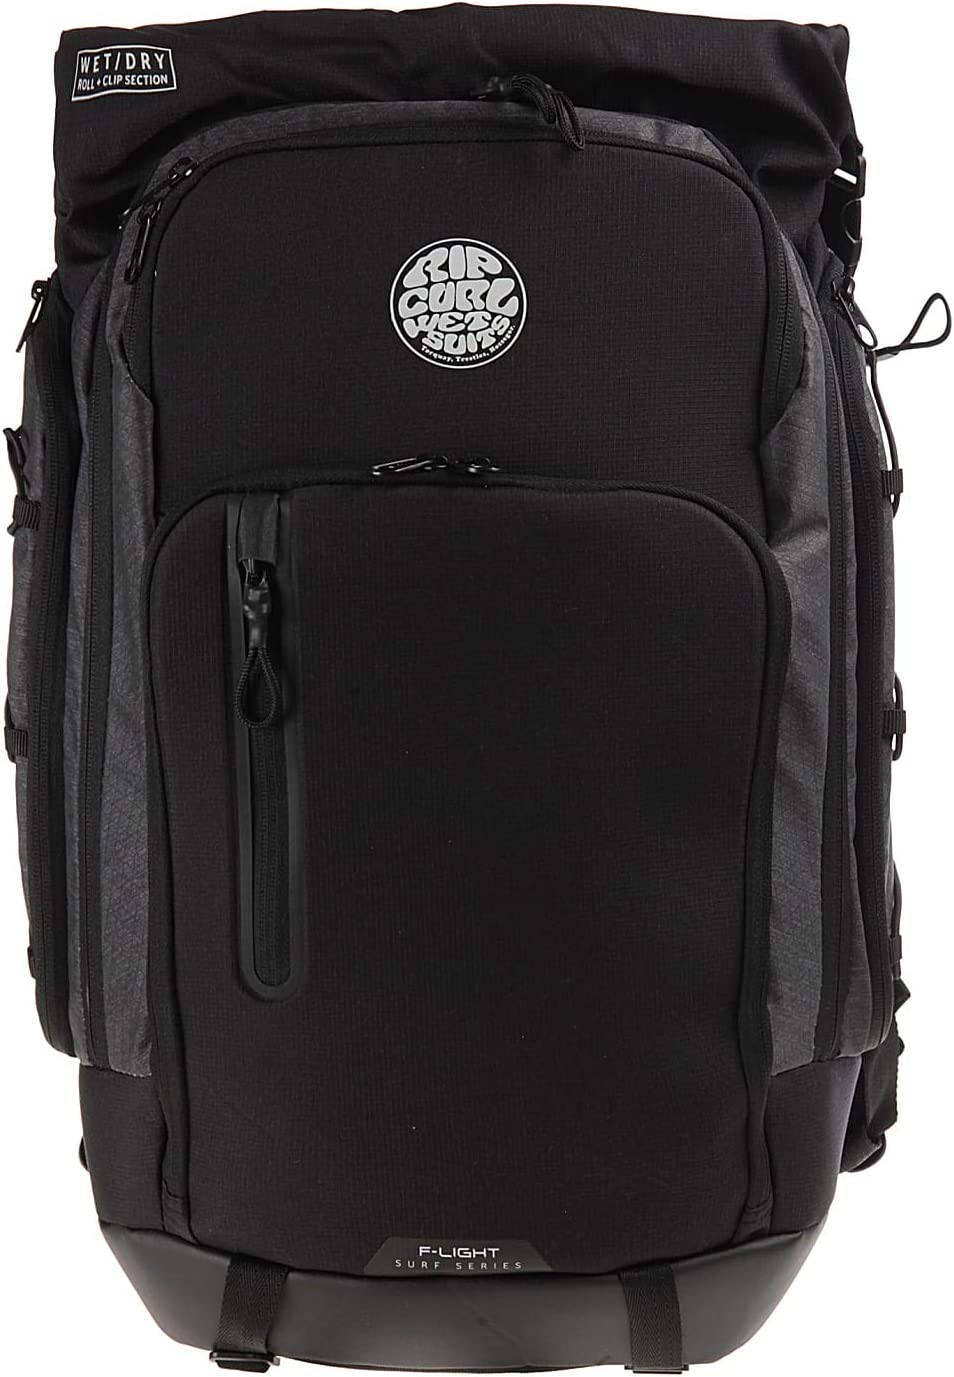 RIP CURL F Light 2.0 Surf Sac à Dos pour Homme 40 l: Amazon